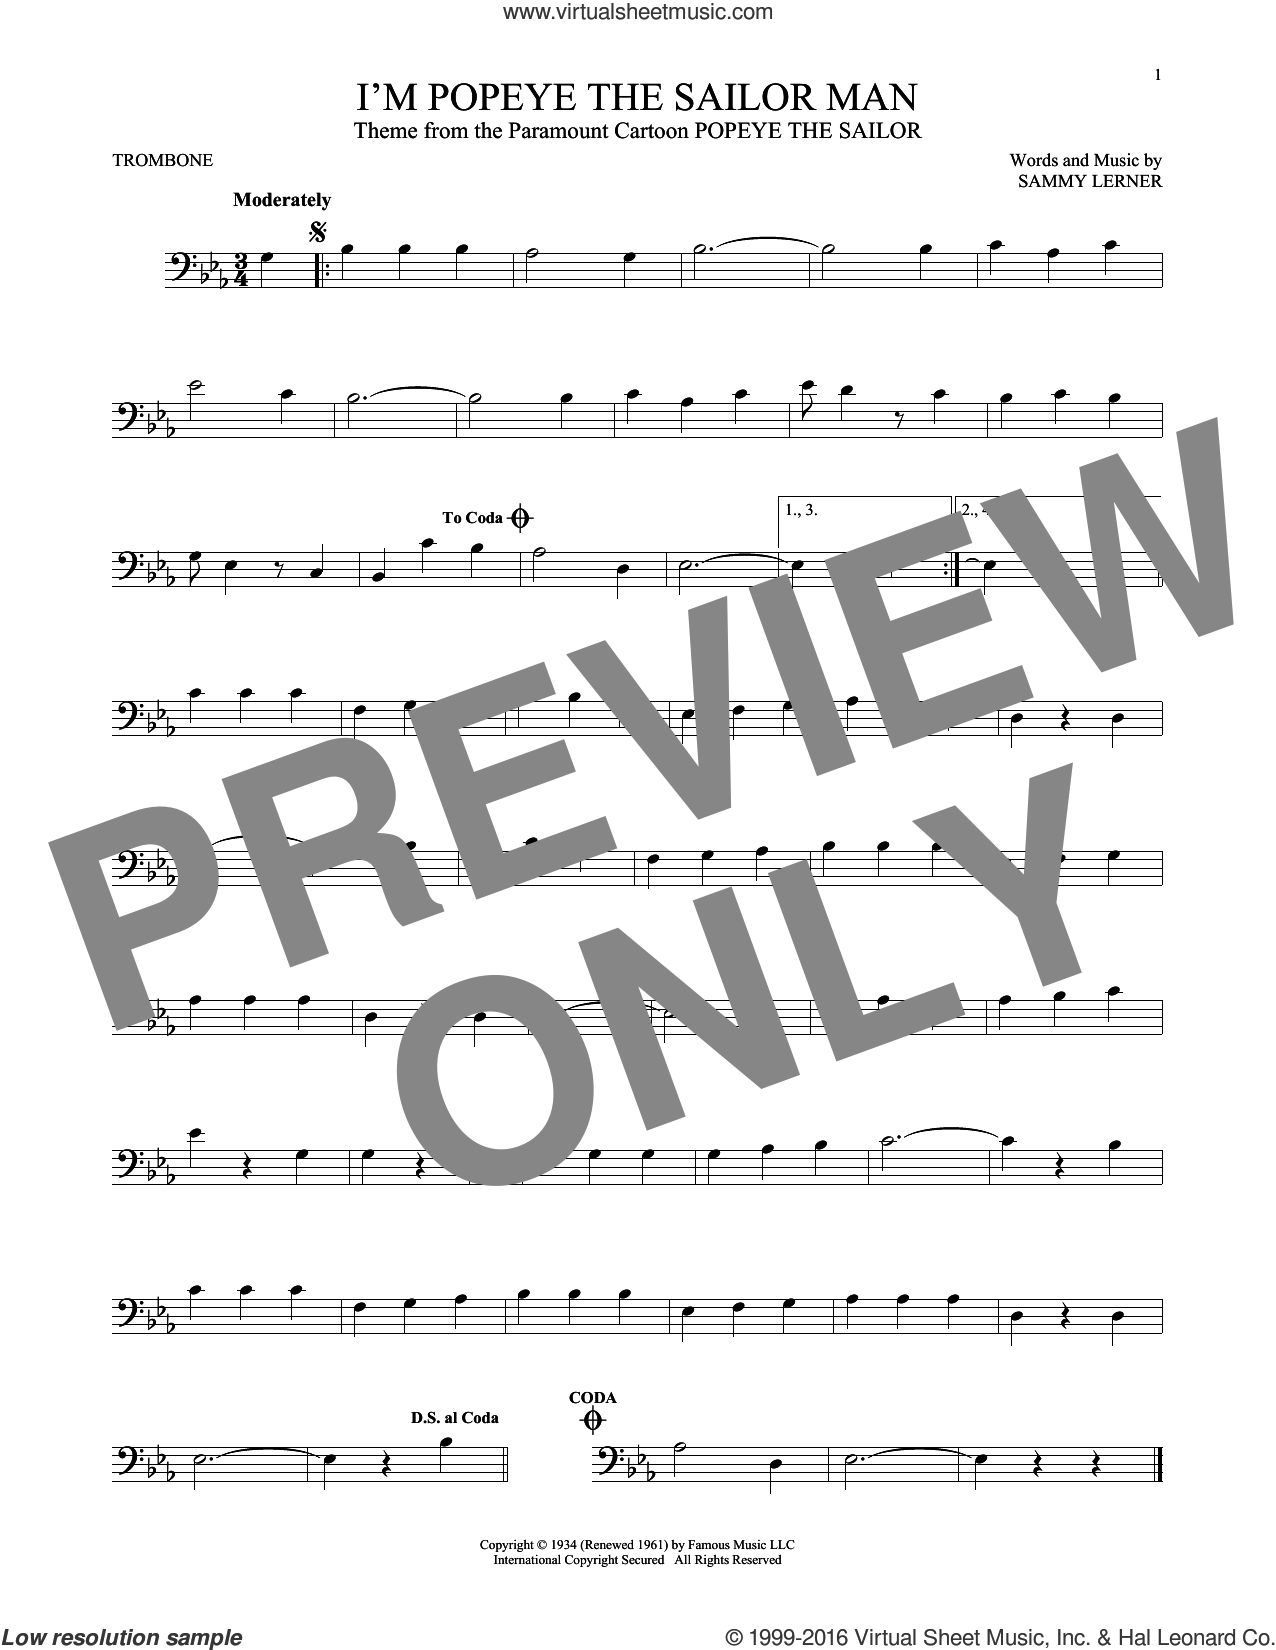 I'm Popeye The Sailor Man sheet music for trombone solo by Sammy Lerner, intermediate skill level